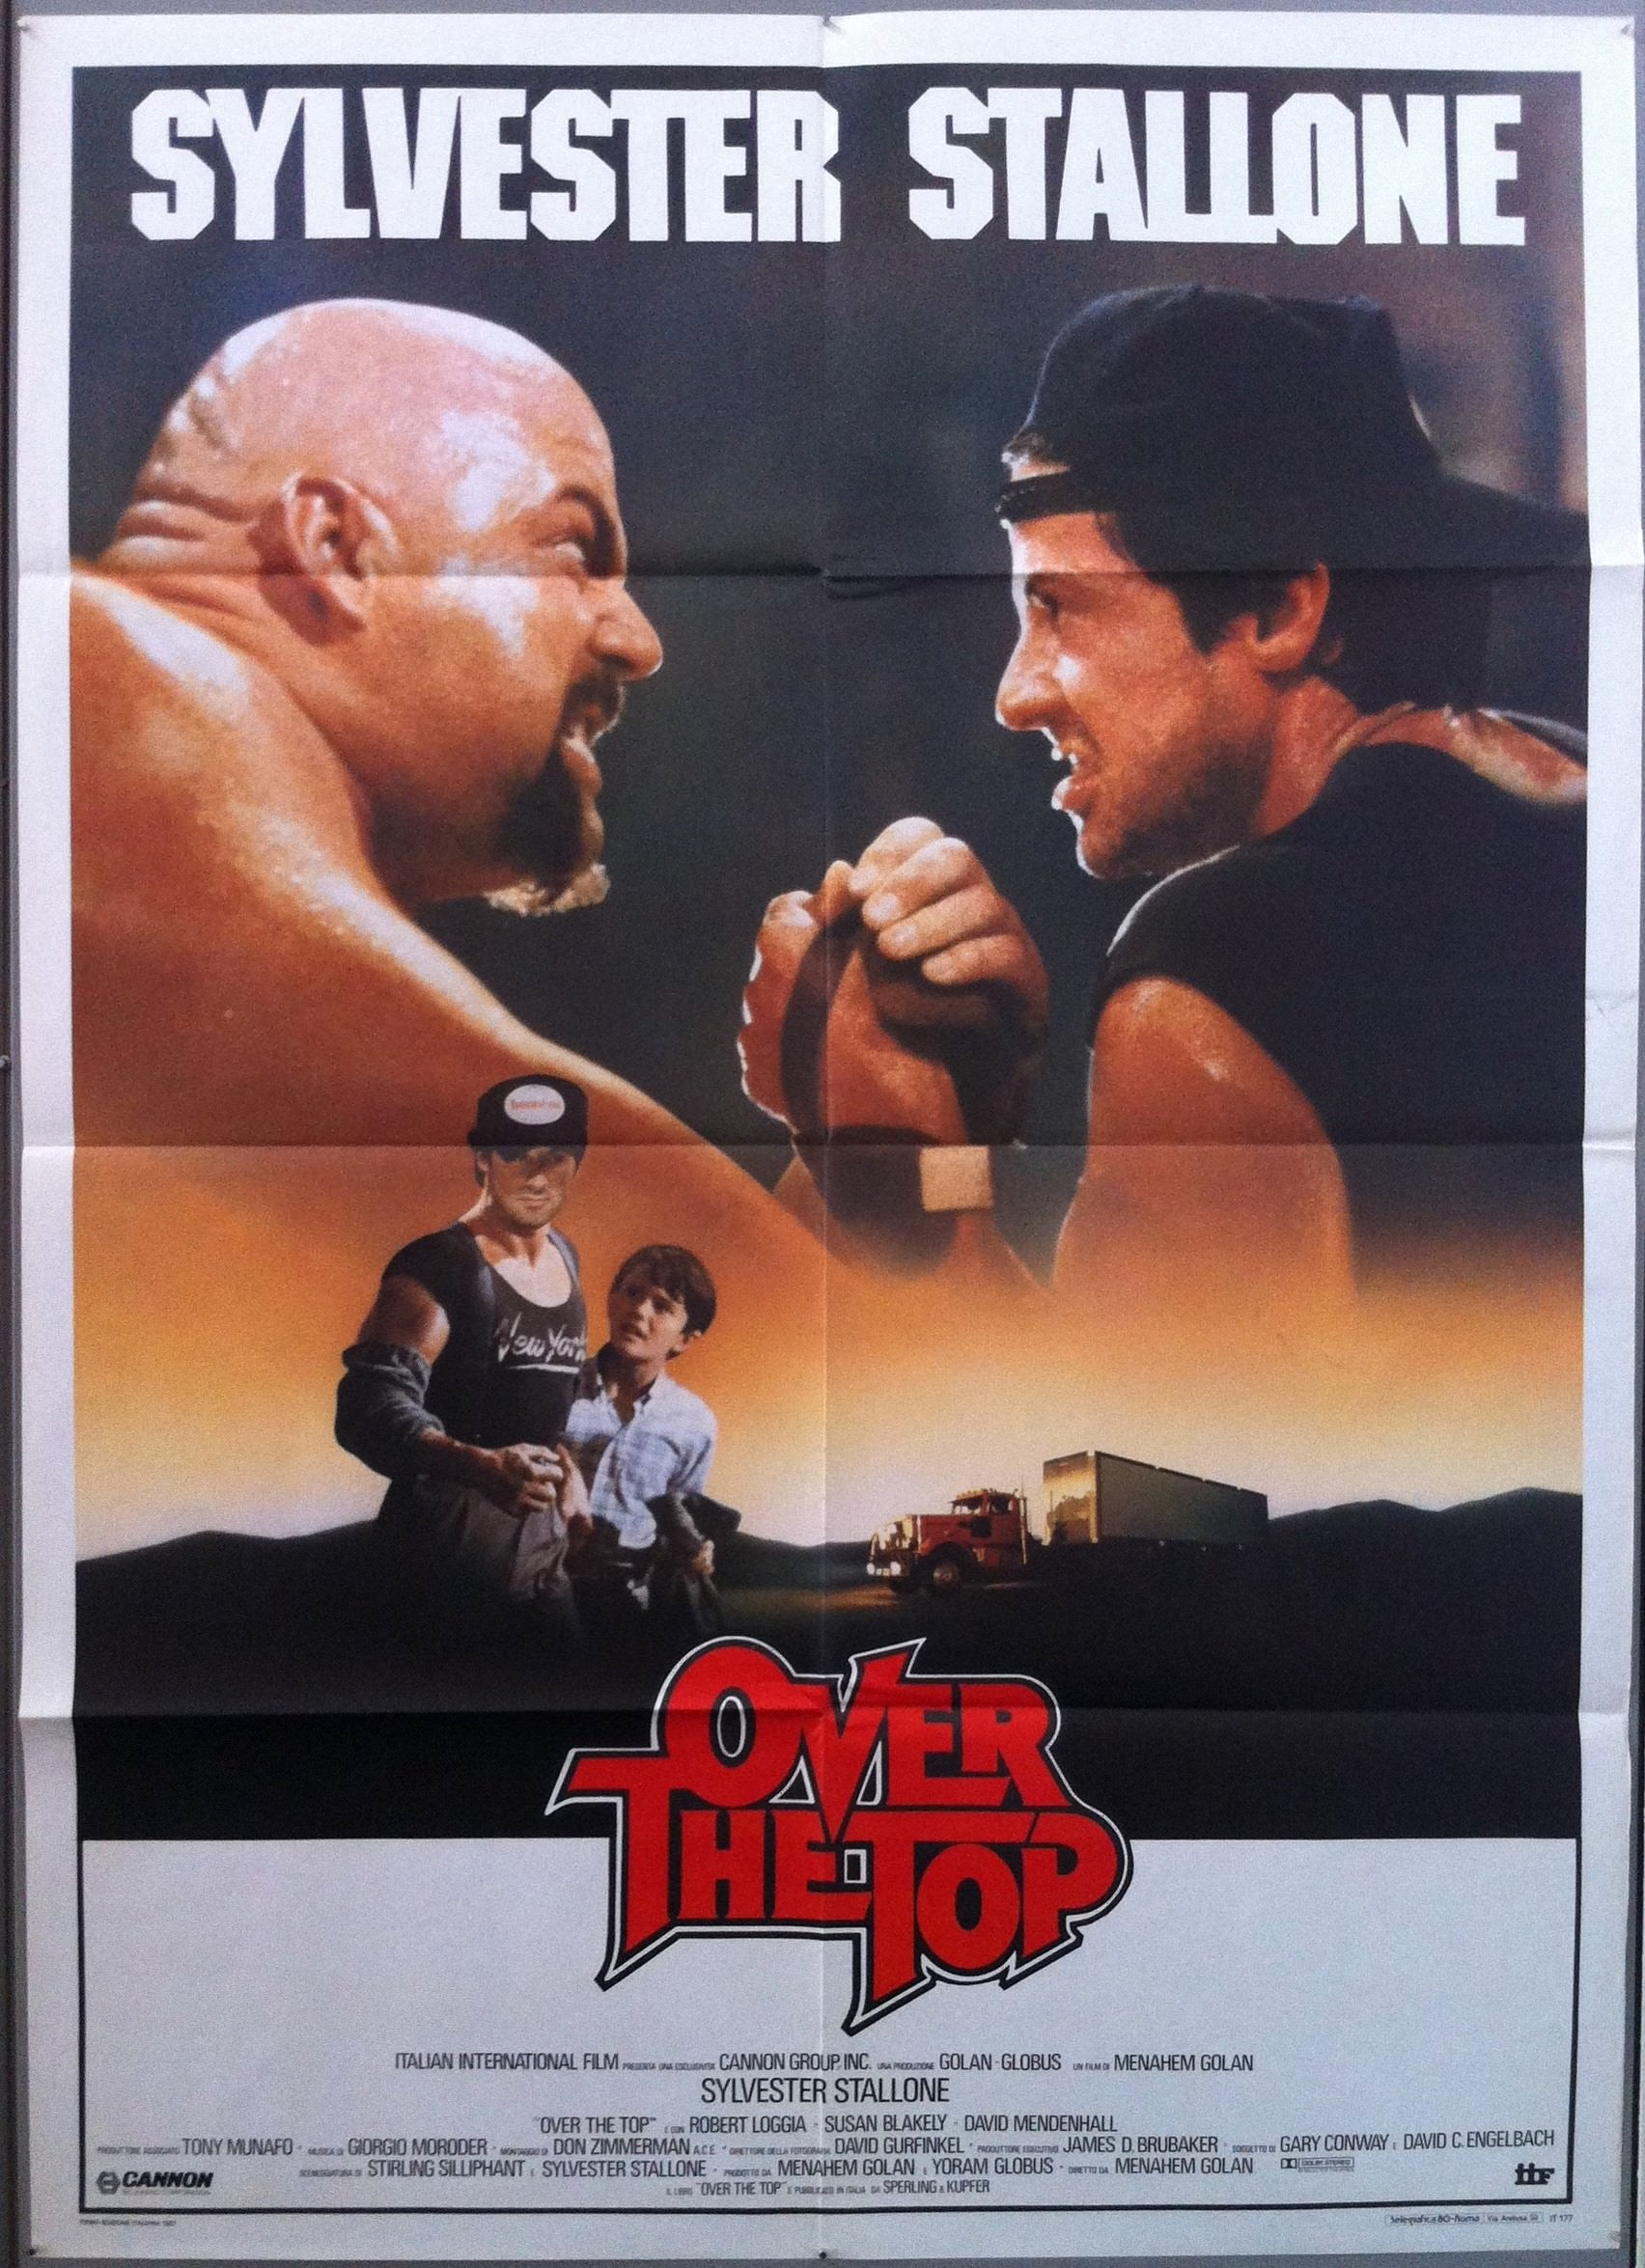 Over the Top (Alternate Poster)